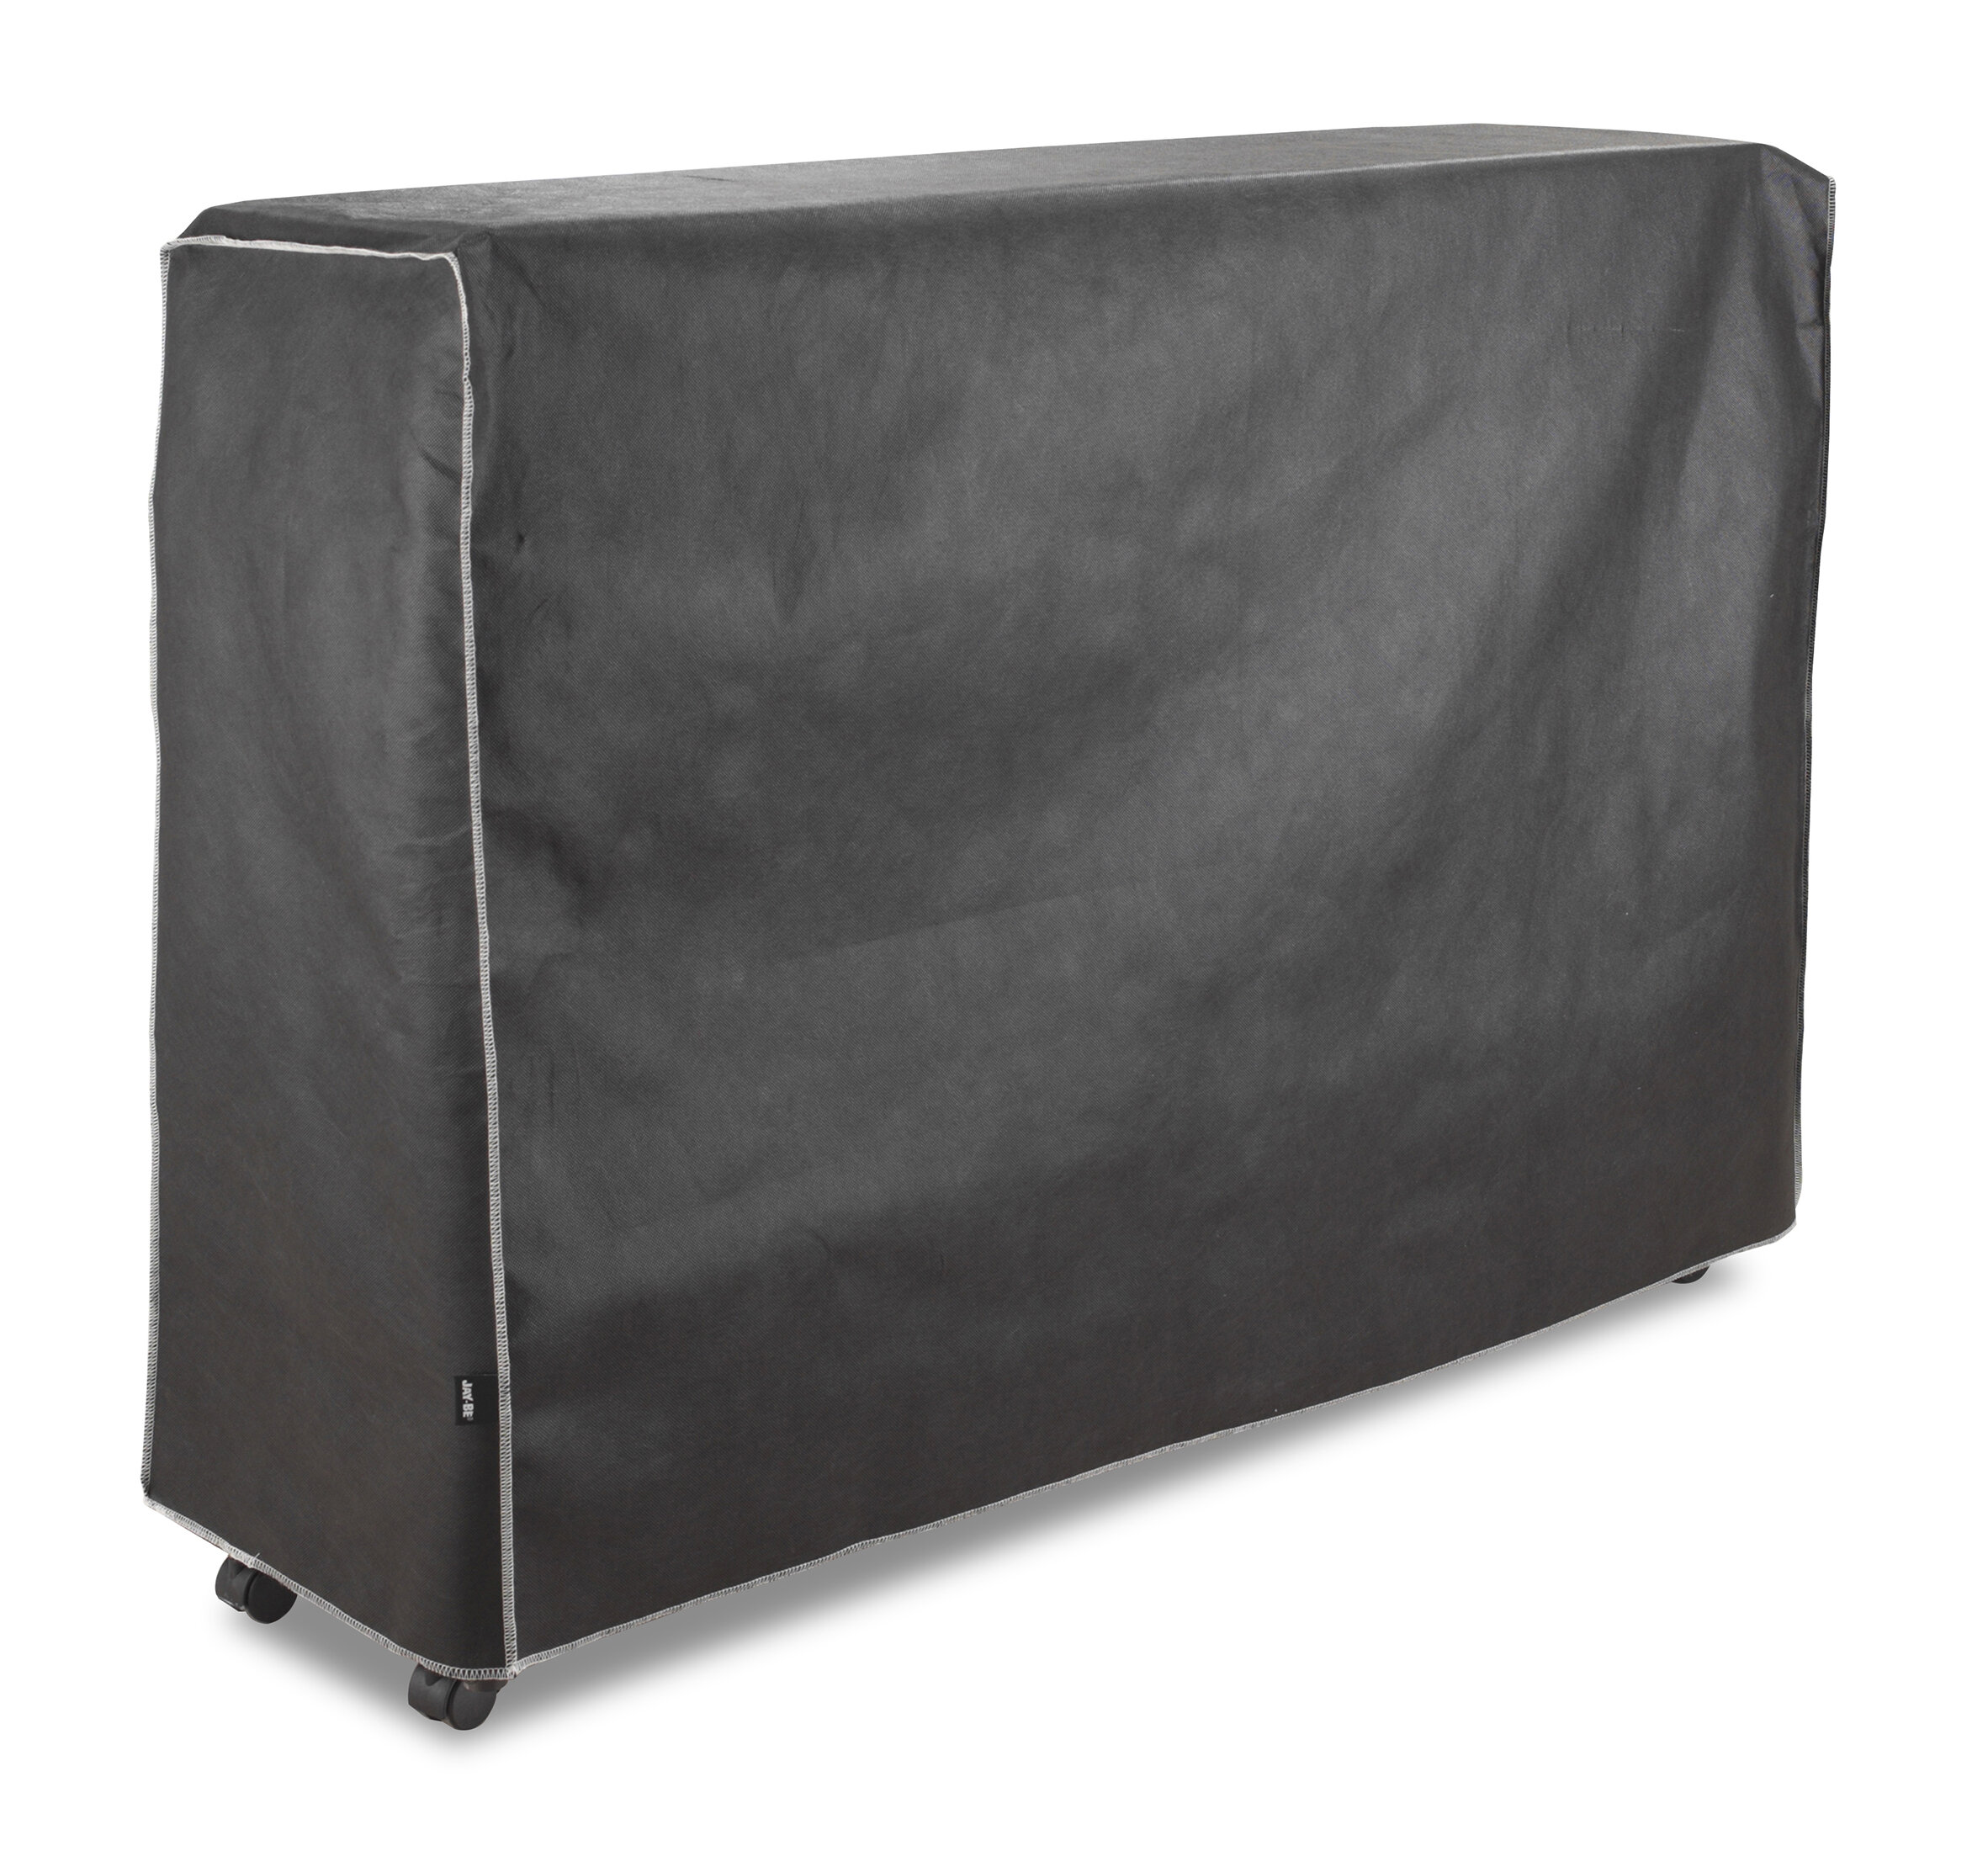 Folding Bed Guest Storage //Dusty Cover For Jay-be Single Value Folding Guest Bed